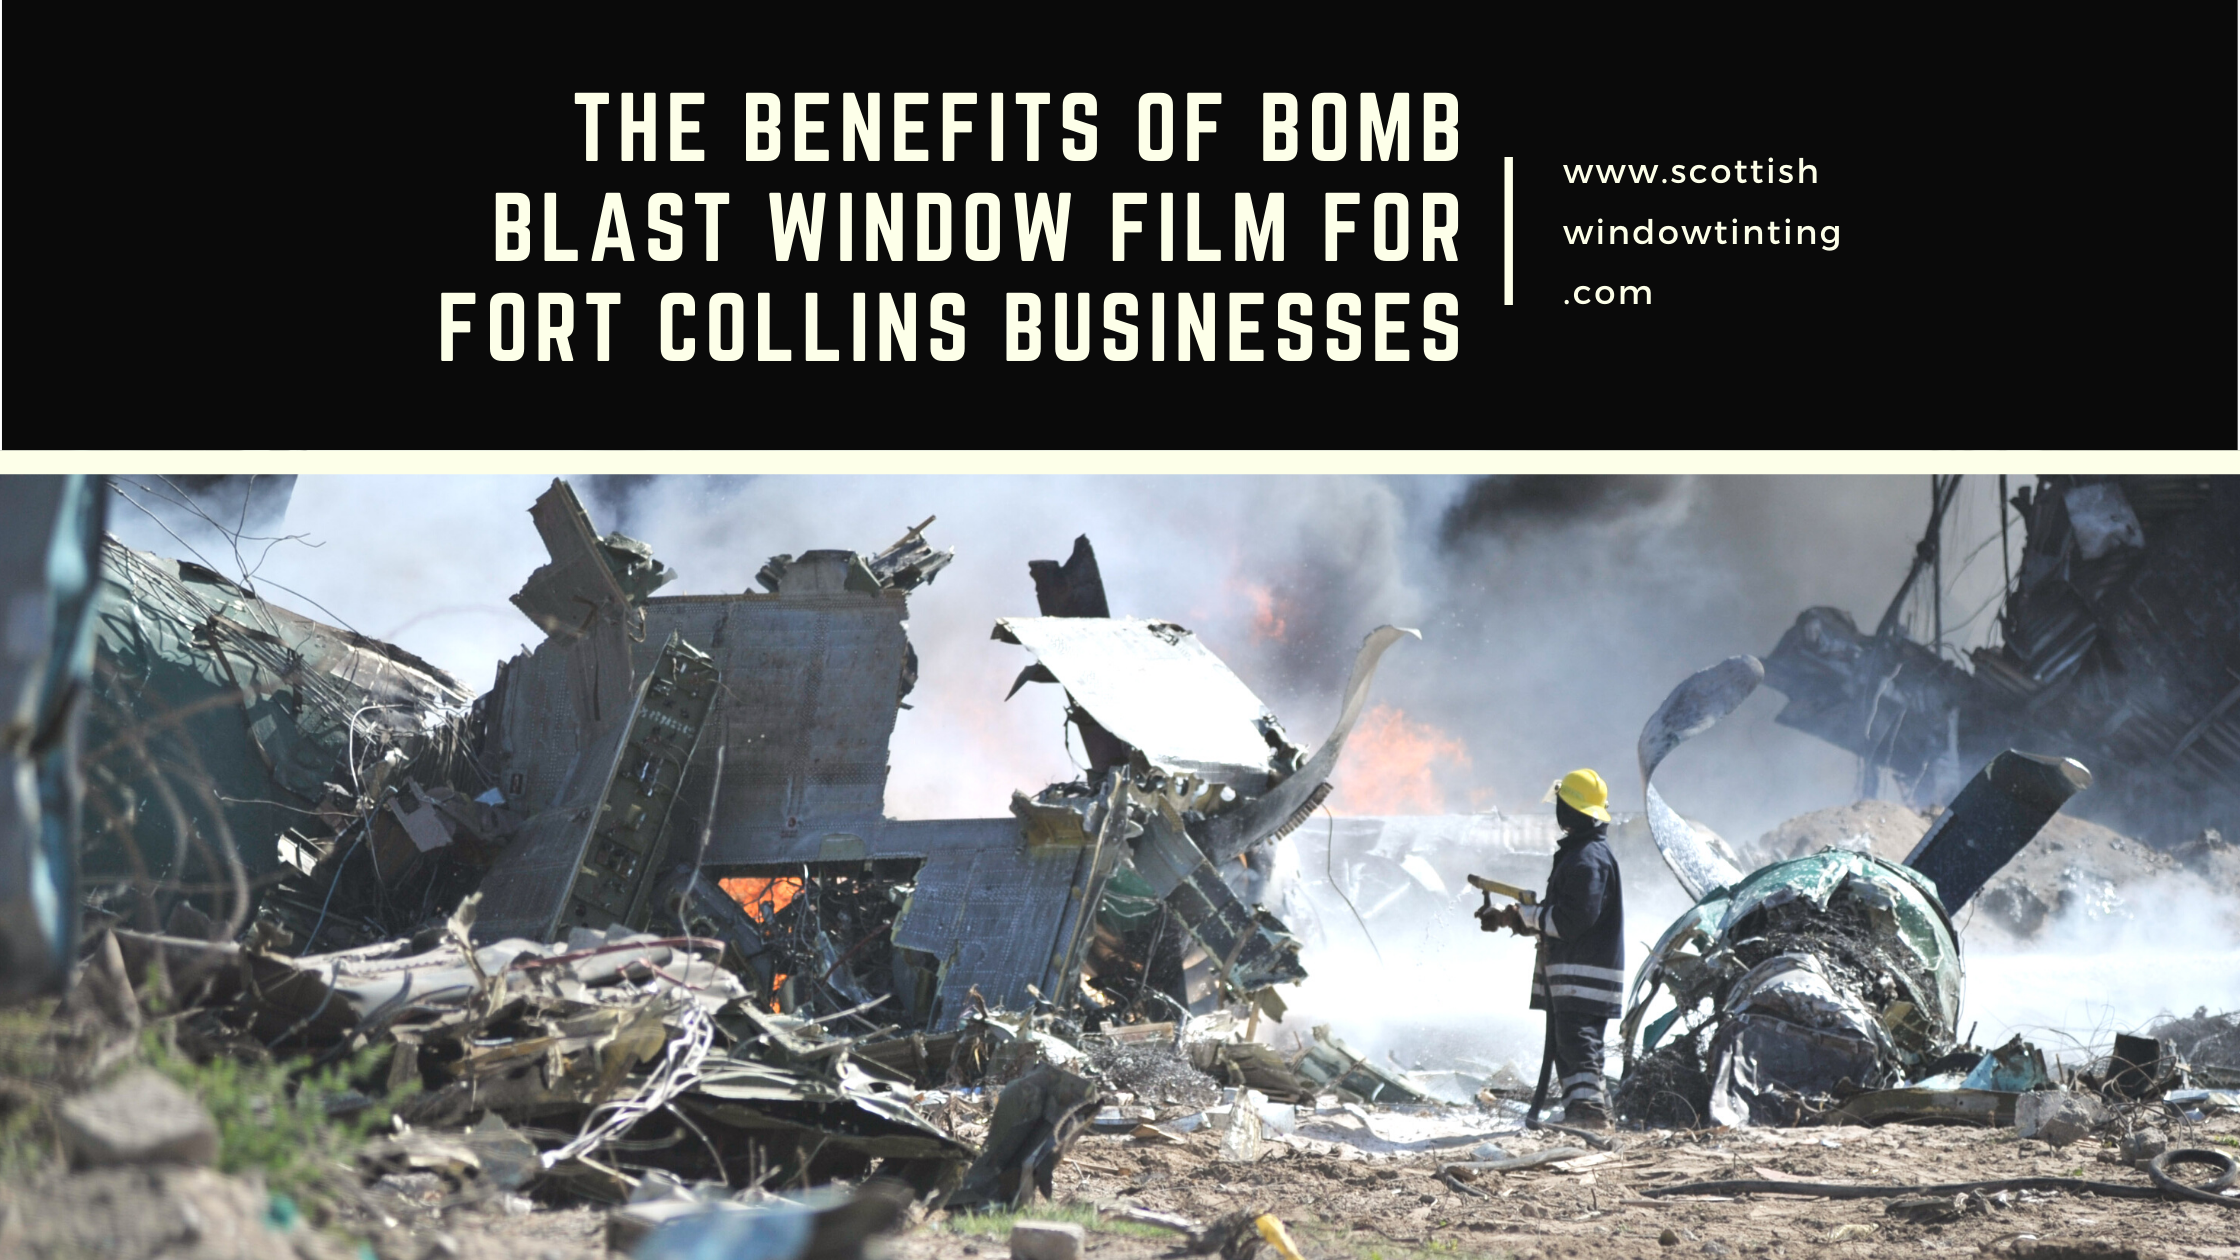 The Benefits of Bomb Blast Window Film for Fort Collins Businesses